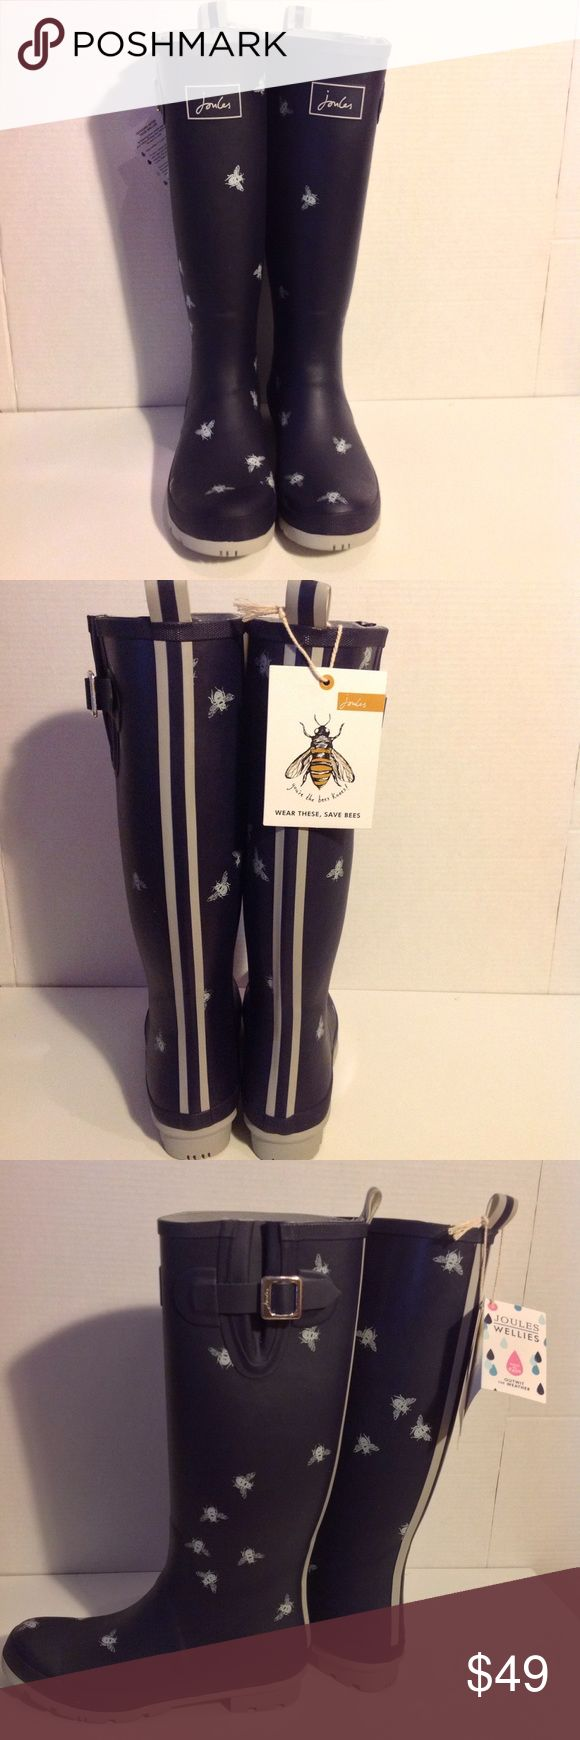 Joules Limited Edition Bee Print Welly Rain Boots Joules Women's Limited Edition Bee Print Wellies in navy and silver. Joules Shoes Winter & Rain Boots